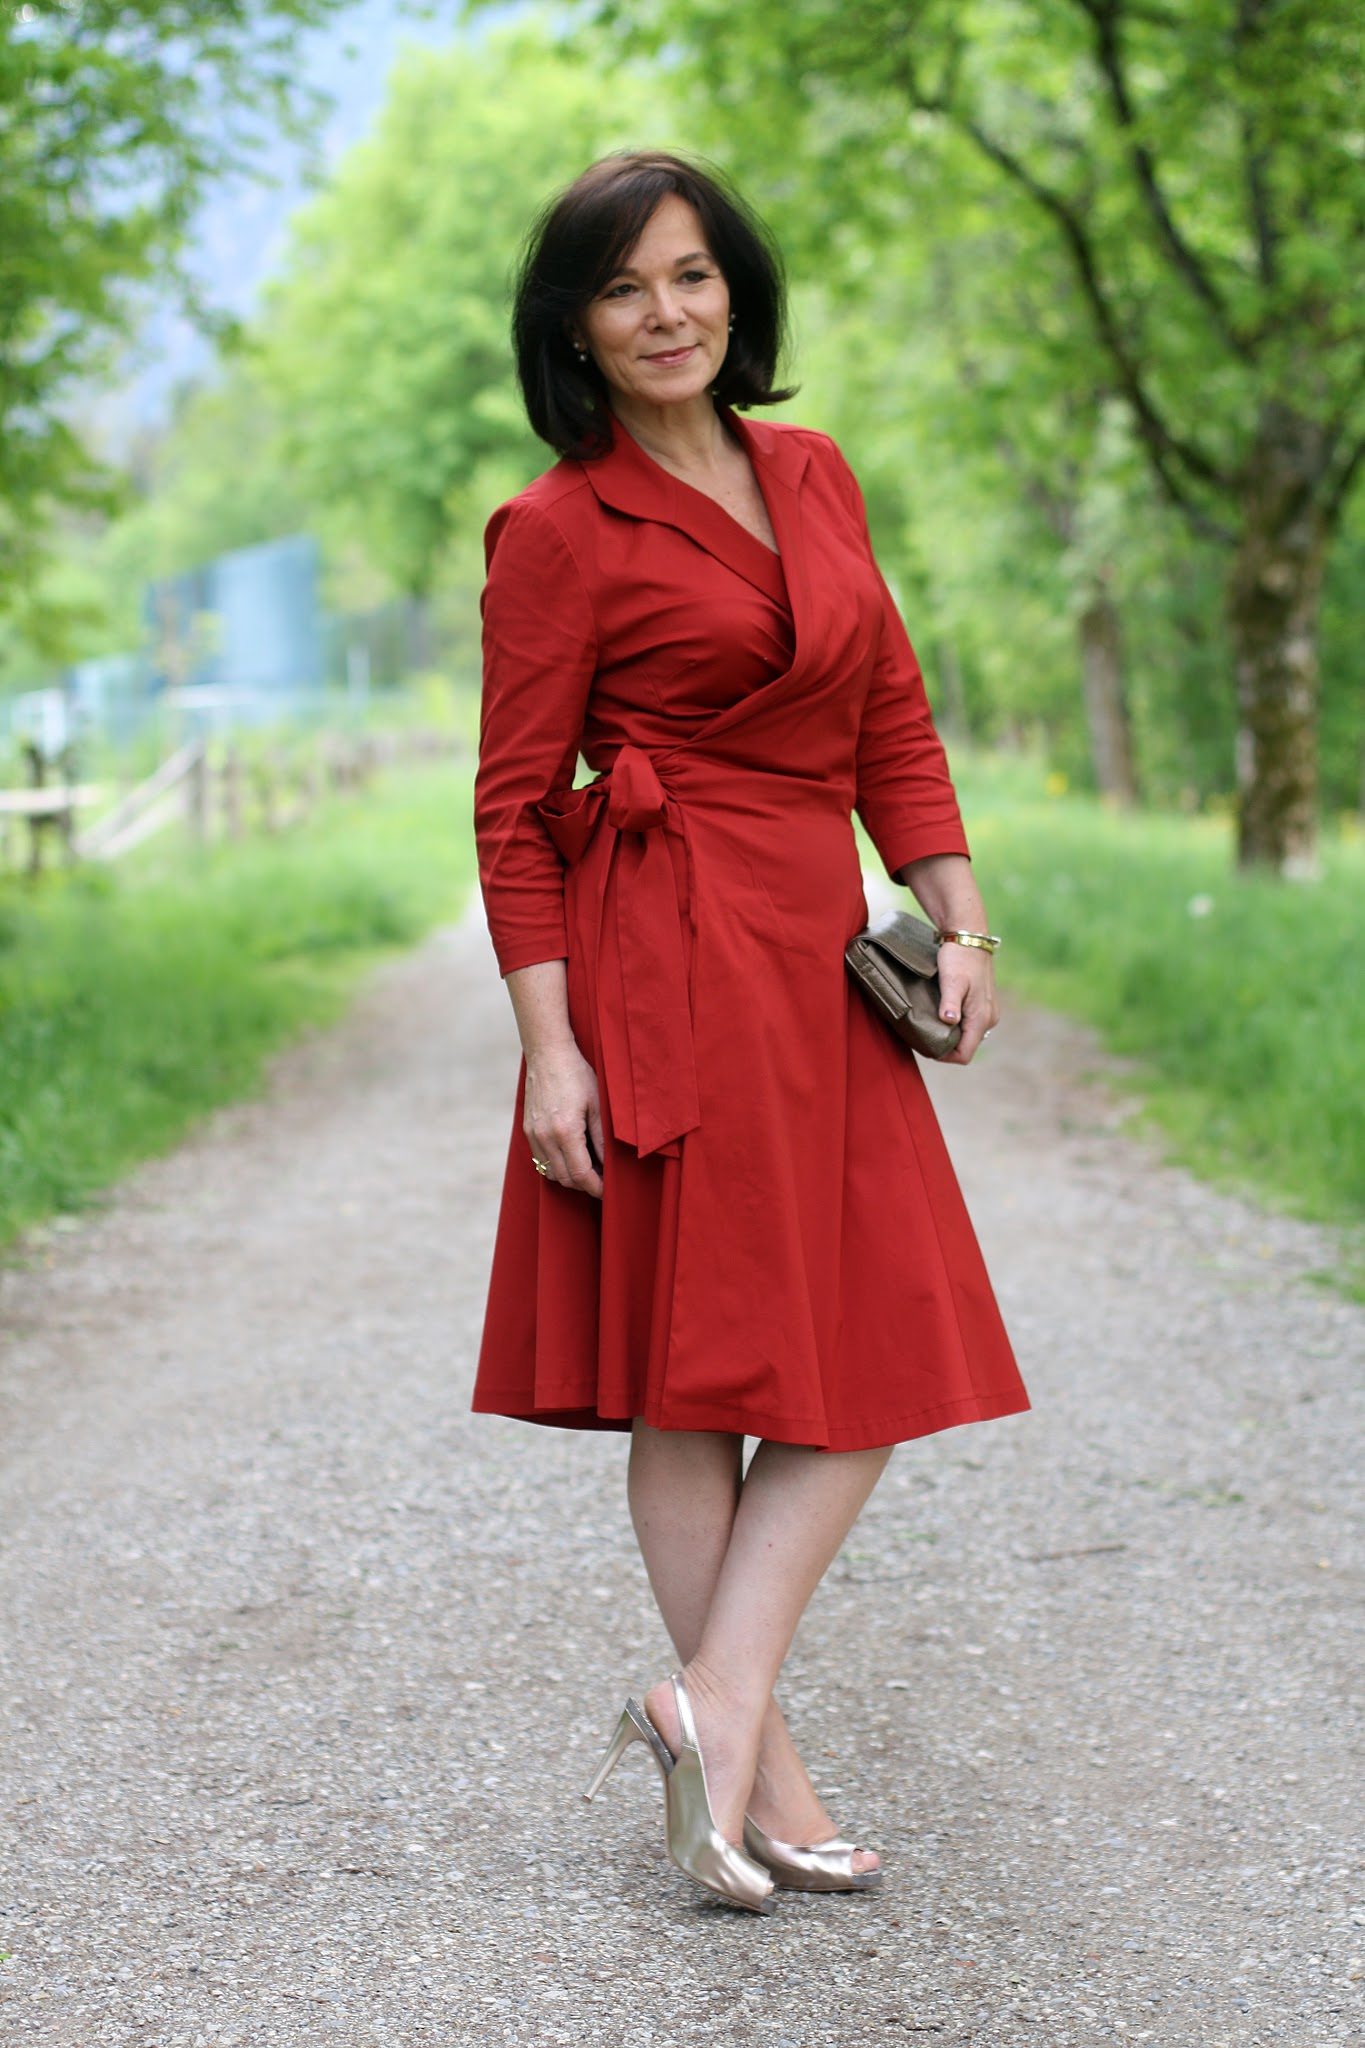 Annette, Lady of Style wearing Winser London